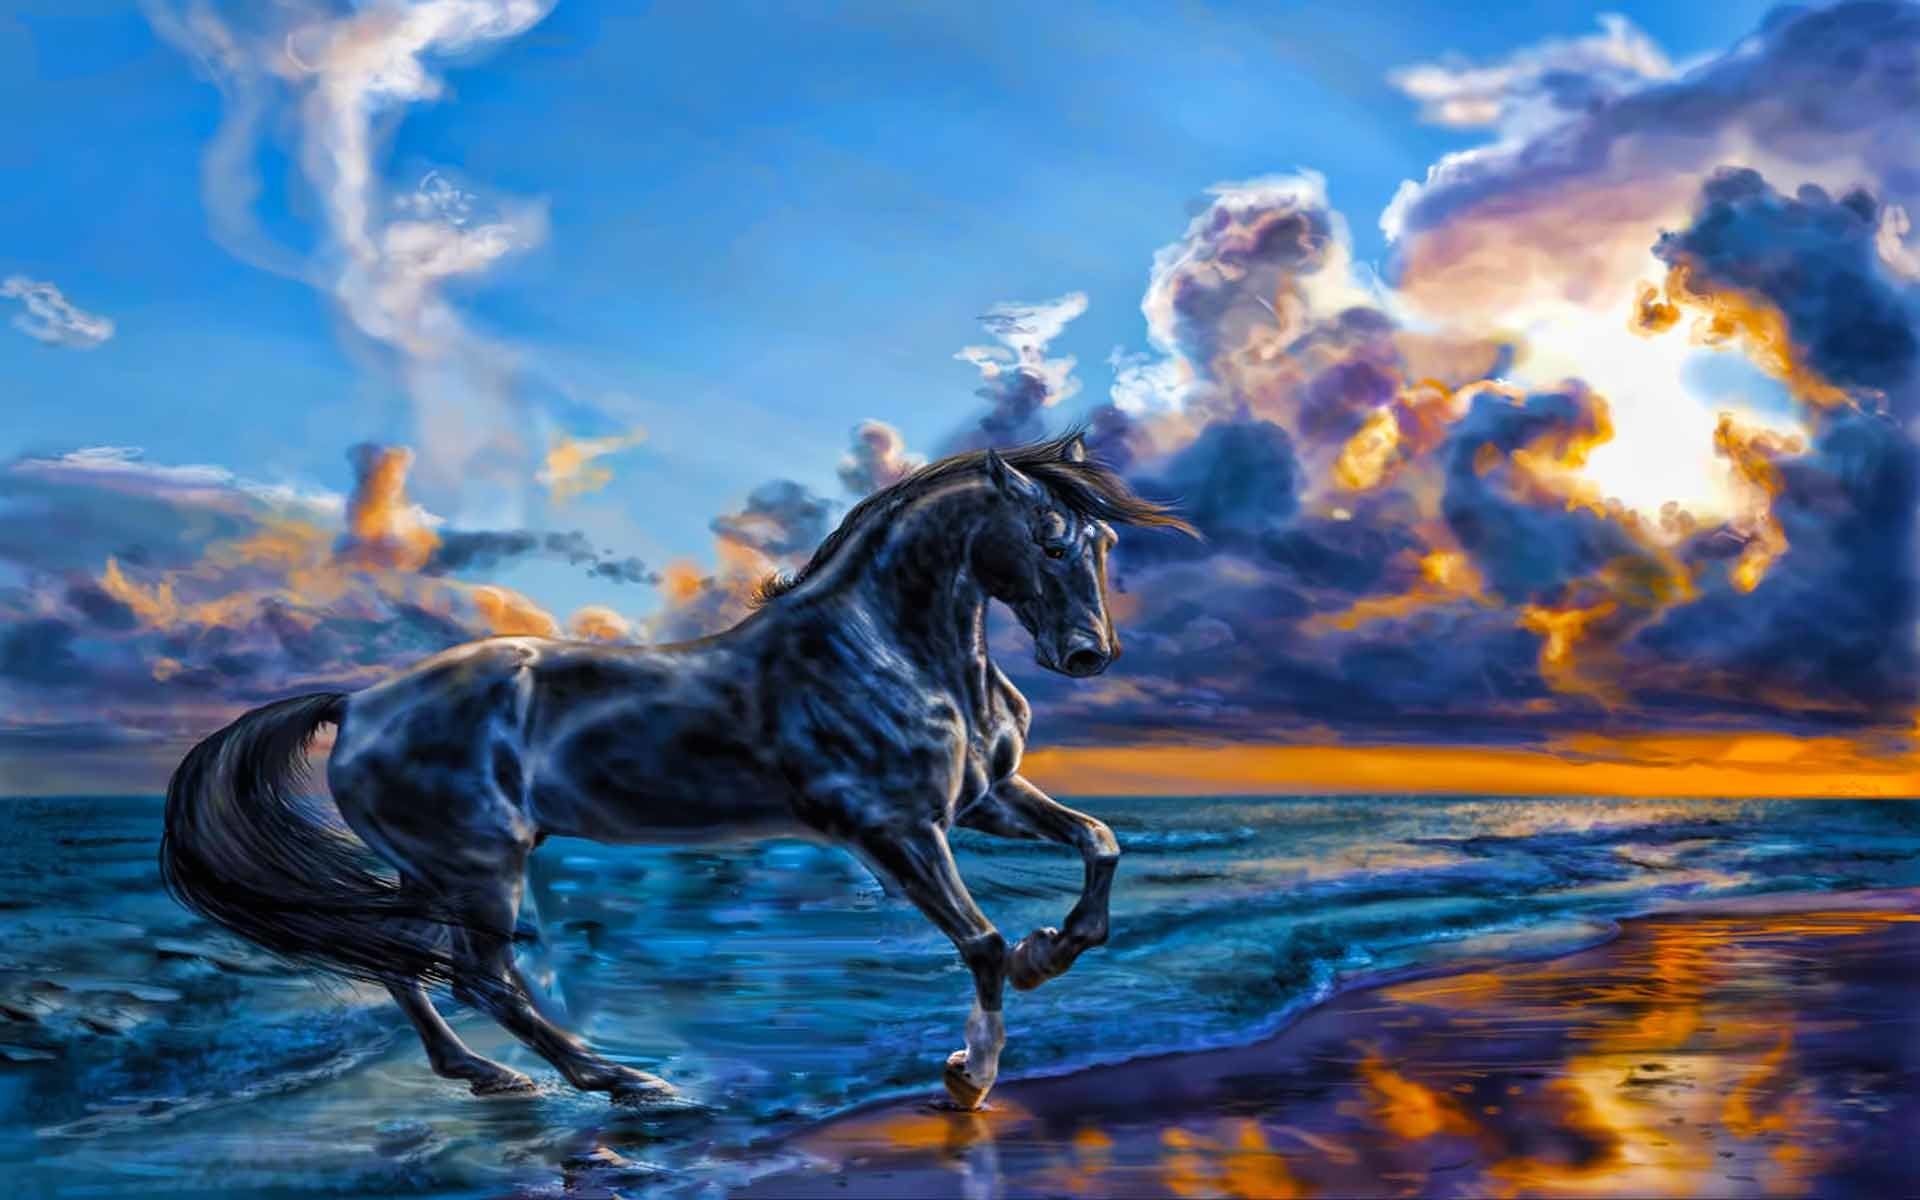 Res: 1920x1200, HD Wallpapers Horse wallpaper - Horse Of Mighty